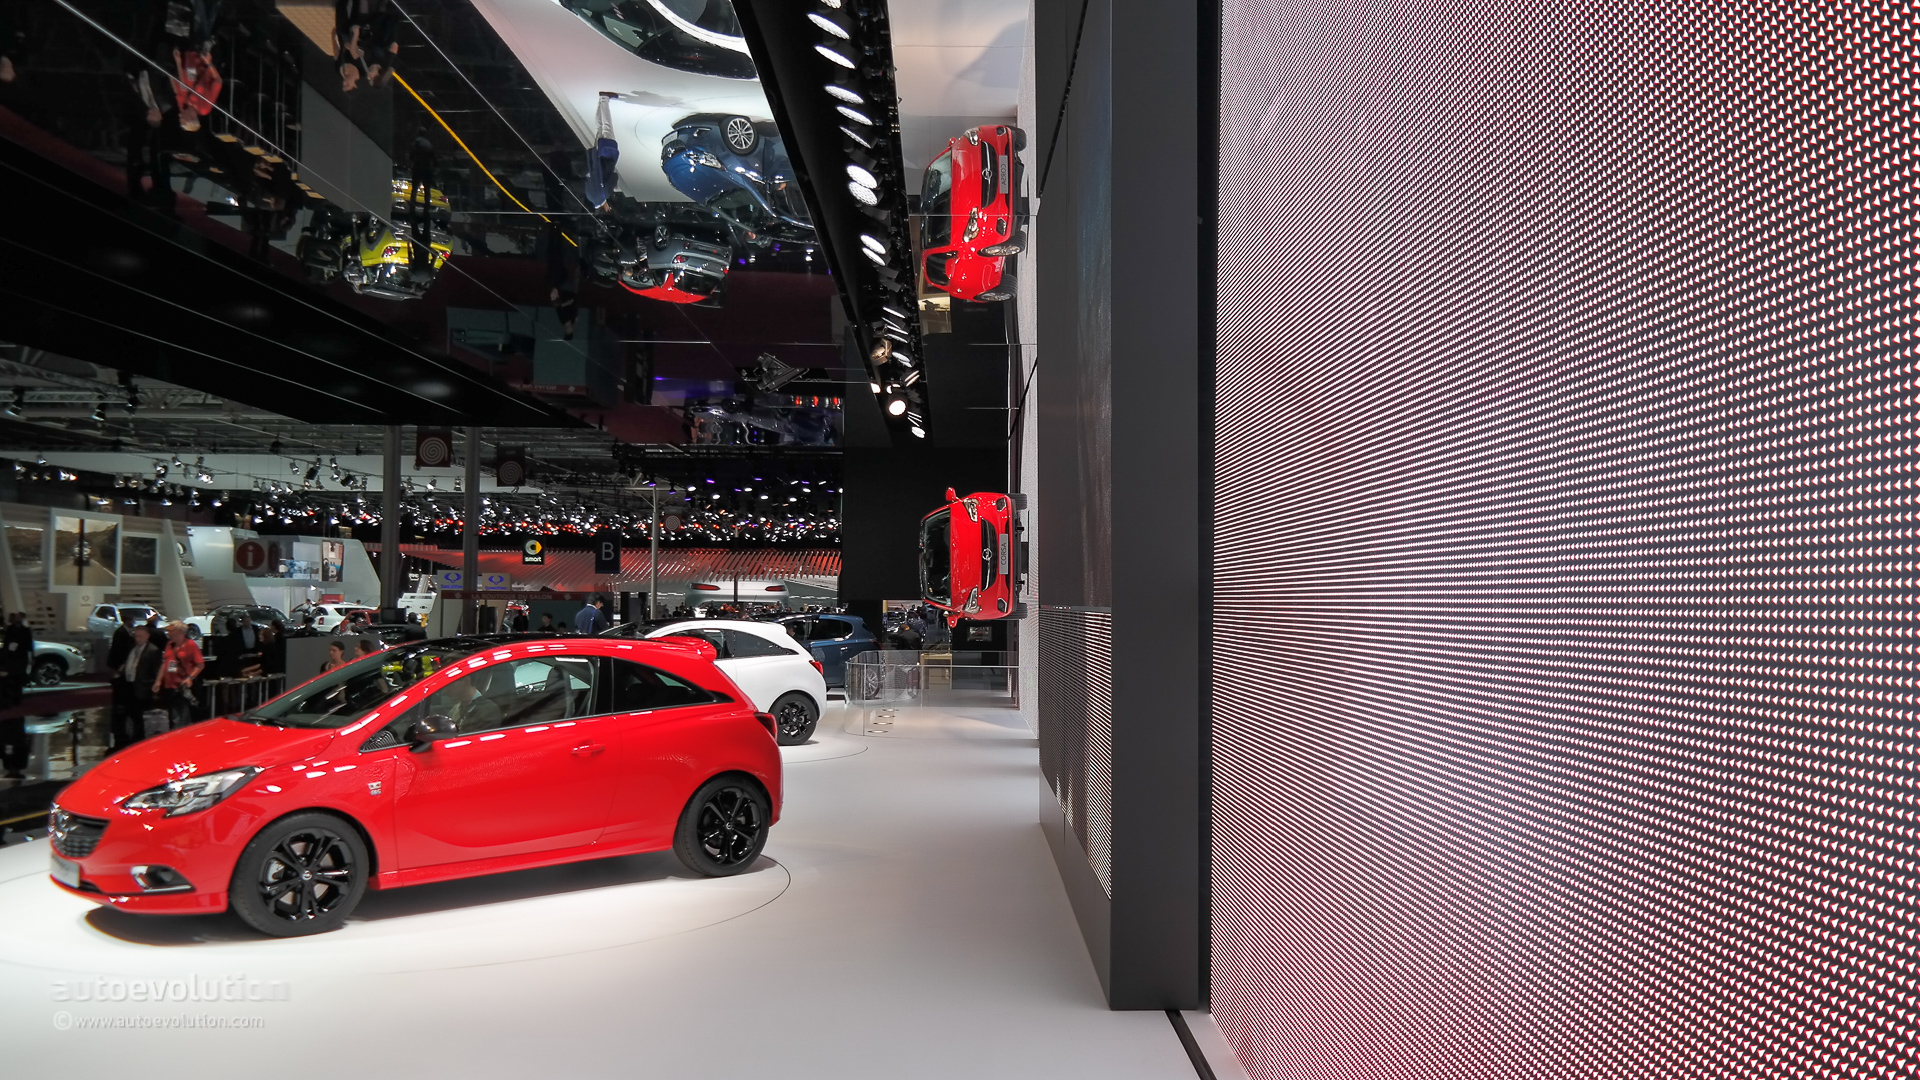 Brand new opel corsa bows at paris motor show 2014 live for Garage opel paris 12